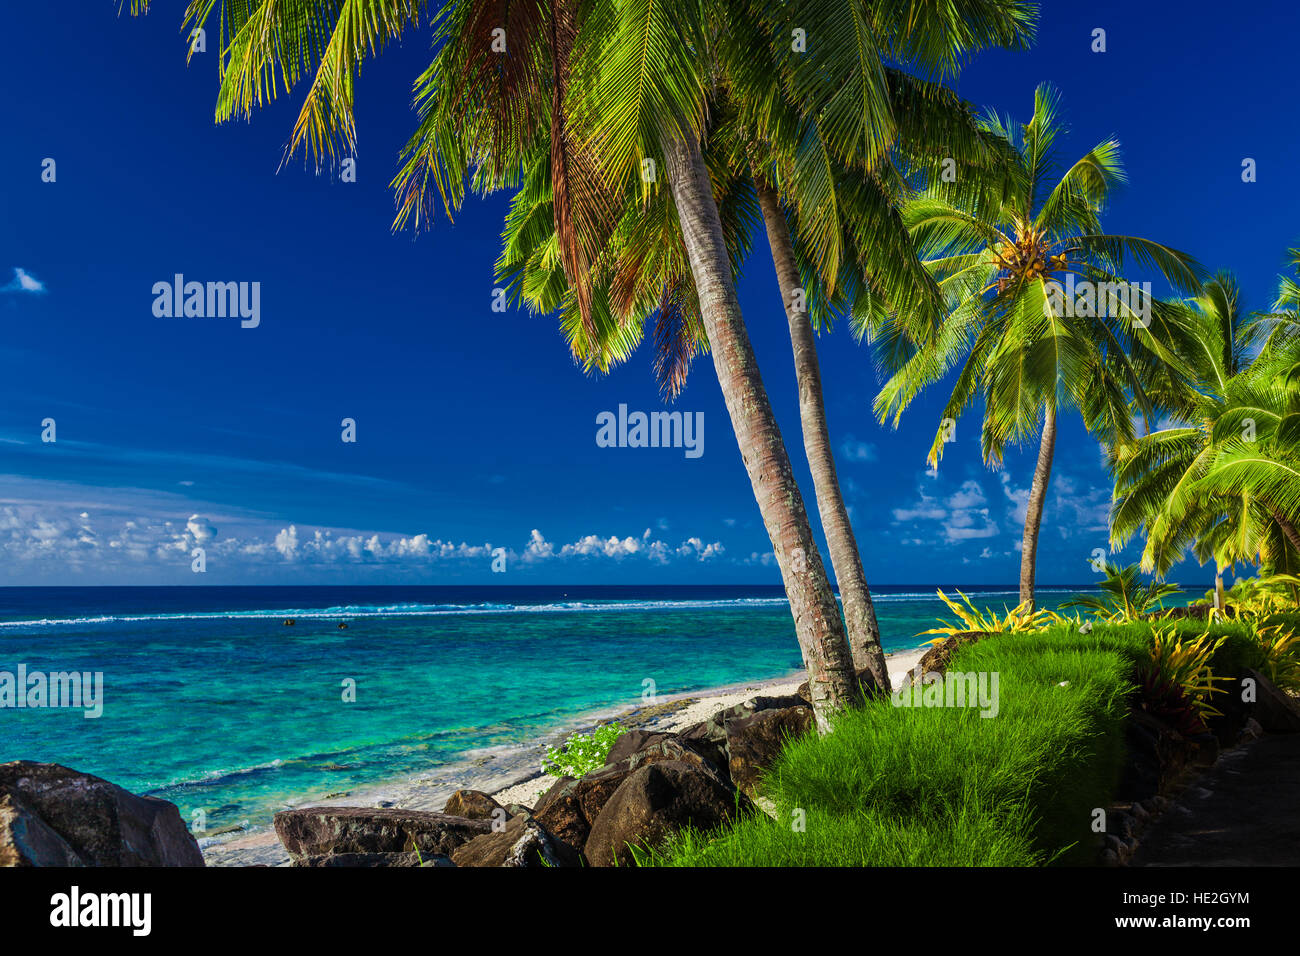 Coconut palm trees over the tropical beach of Rarotonga, Cook Islands, South Pacific - Stock Image